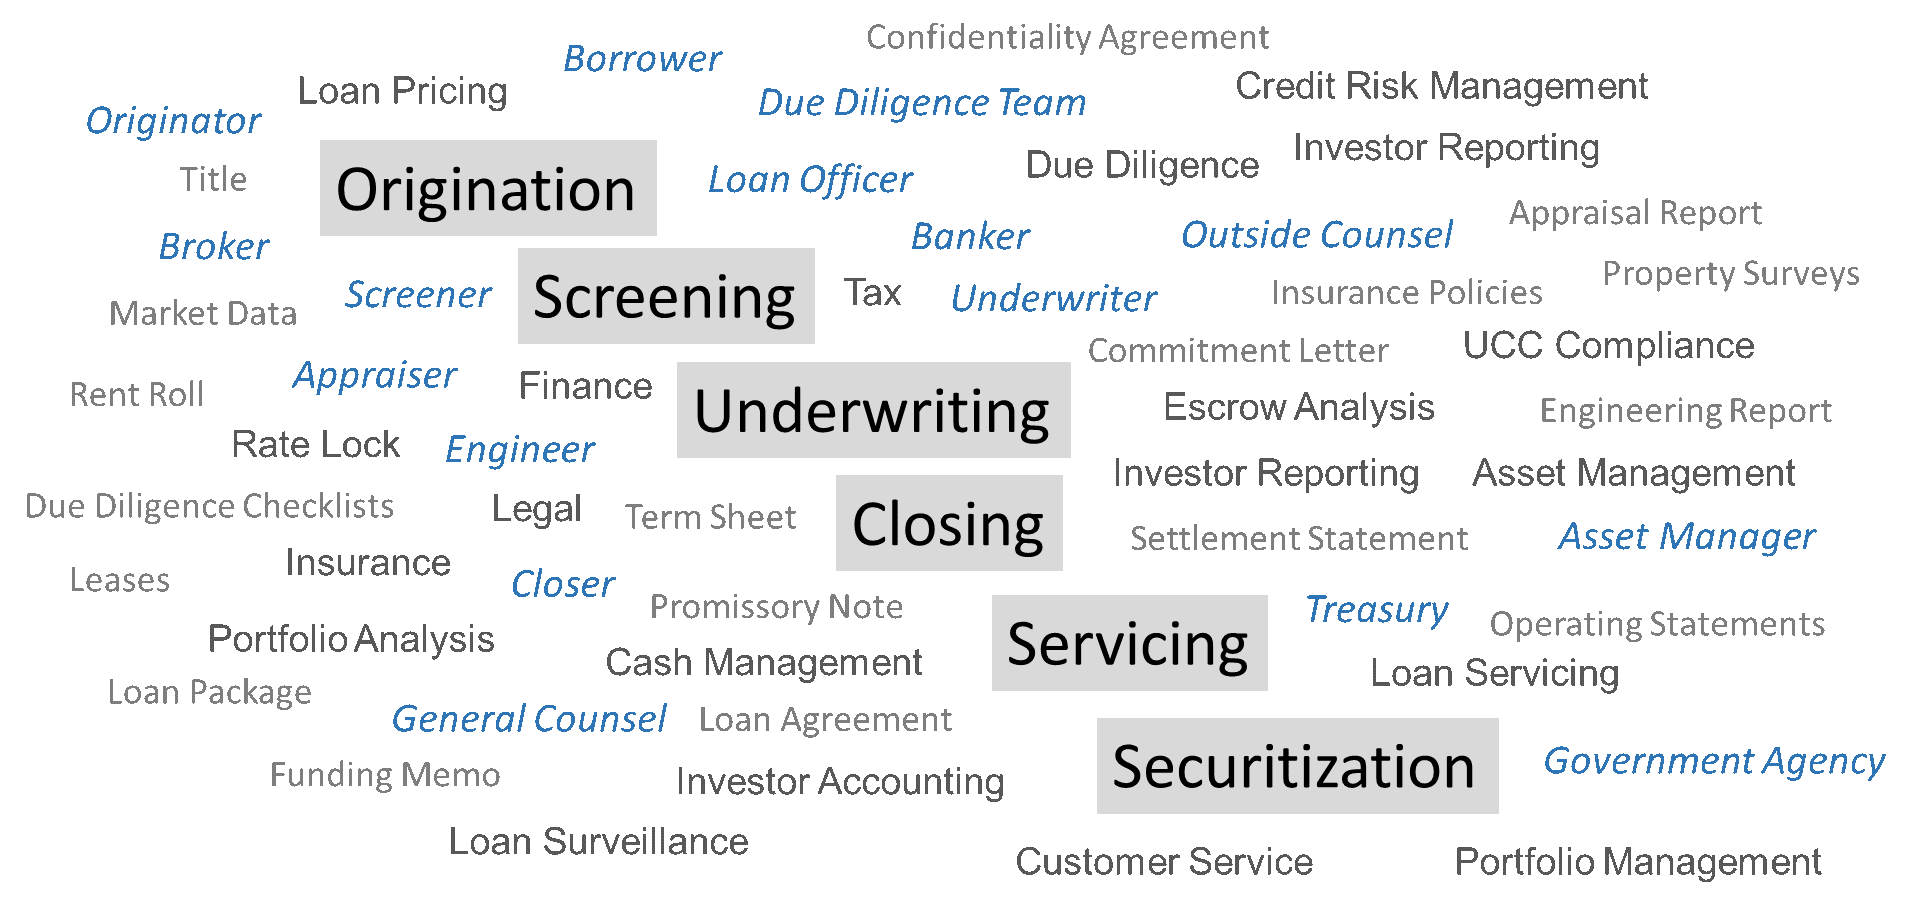 keywords related to CREF stakeholder collaboration